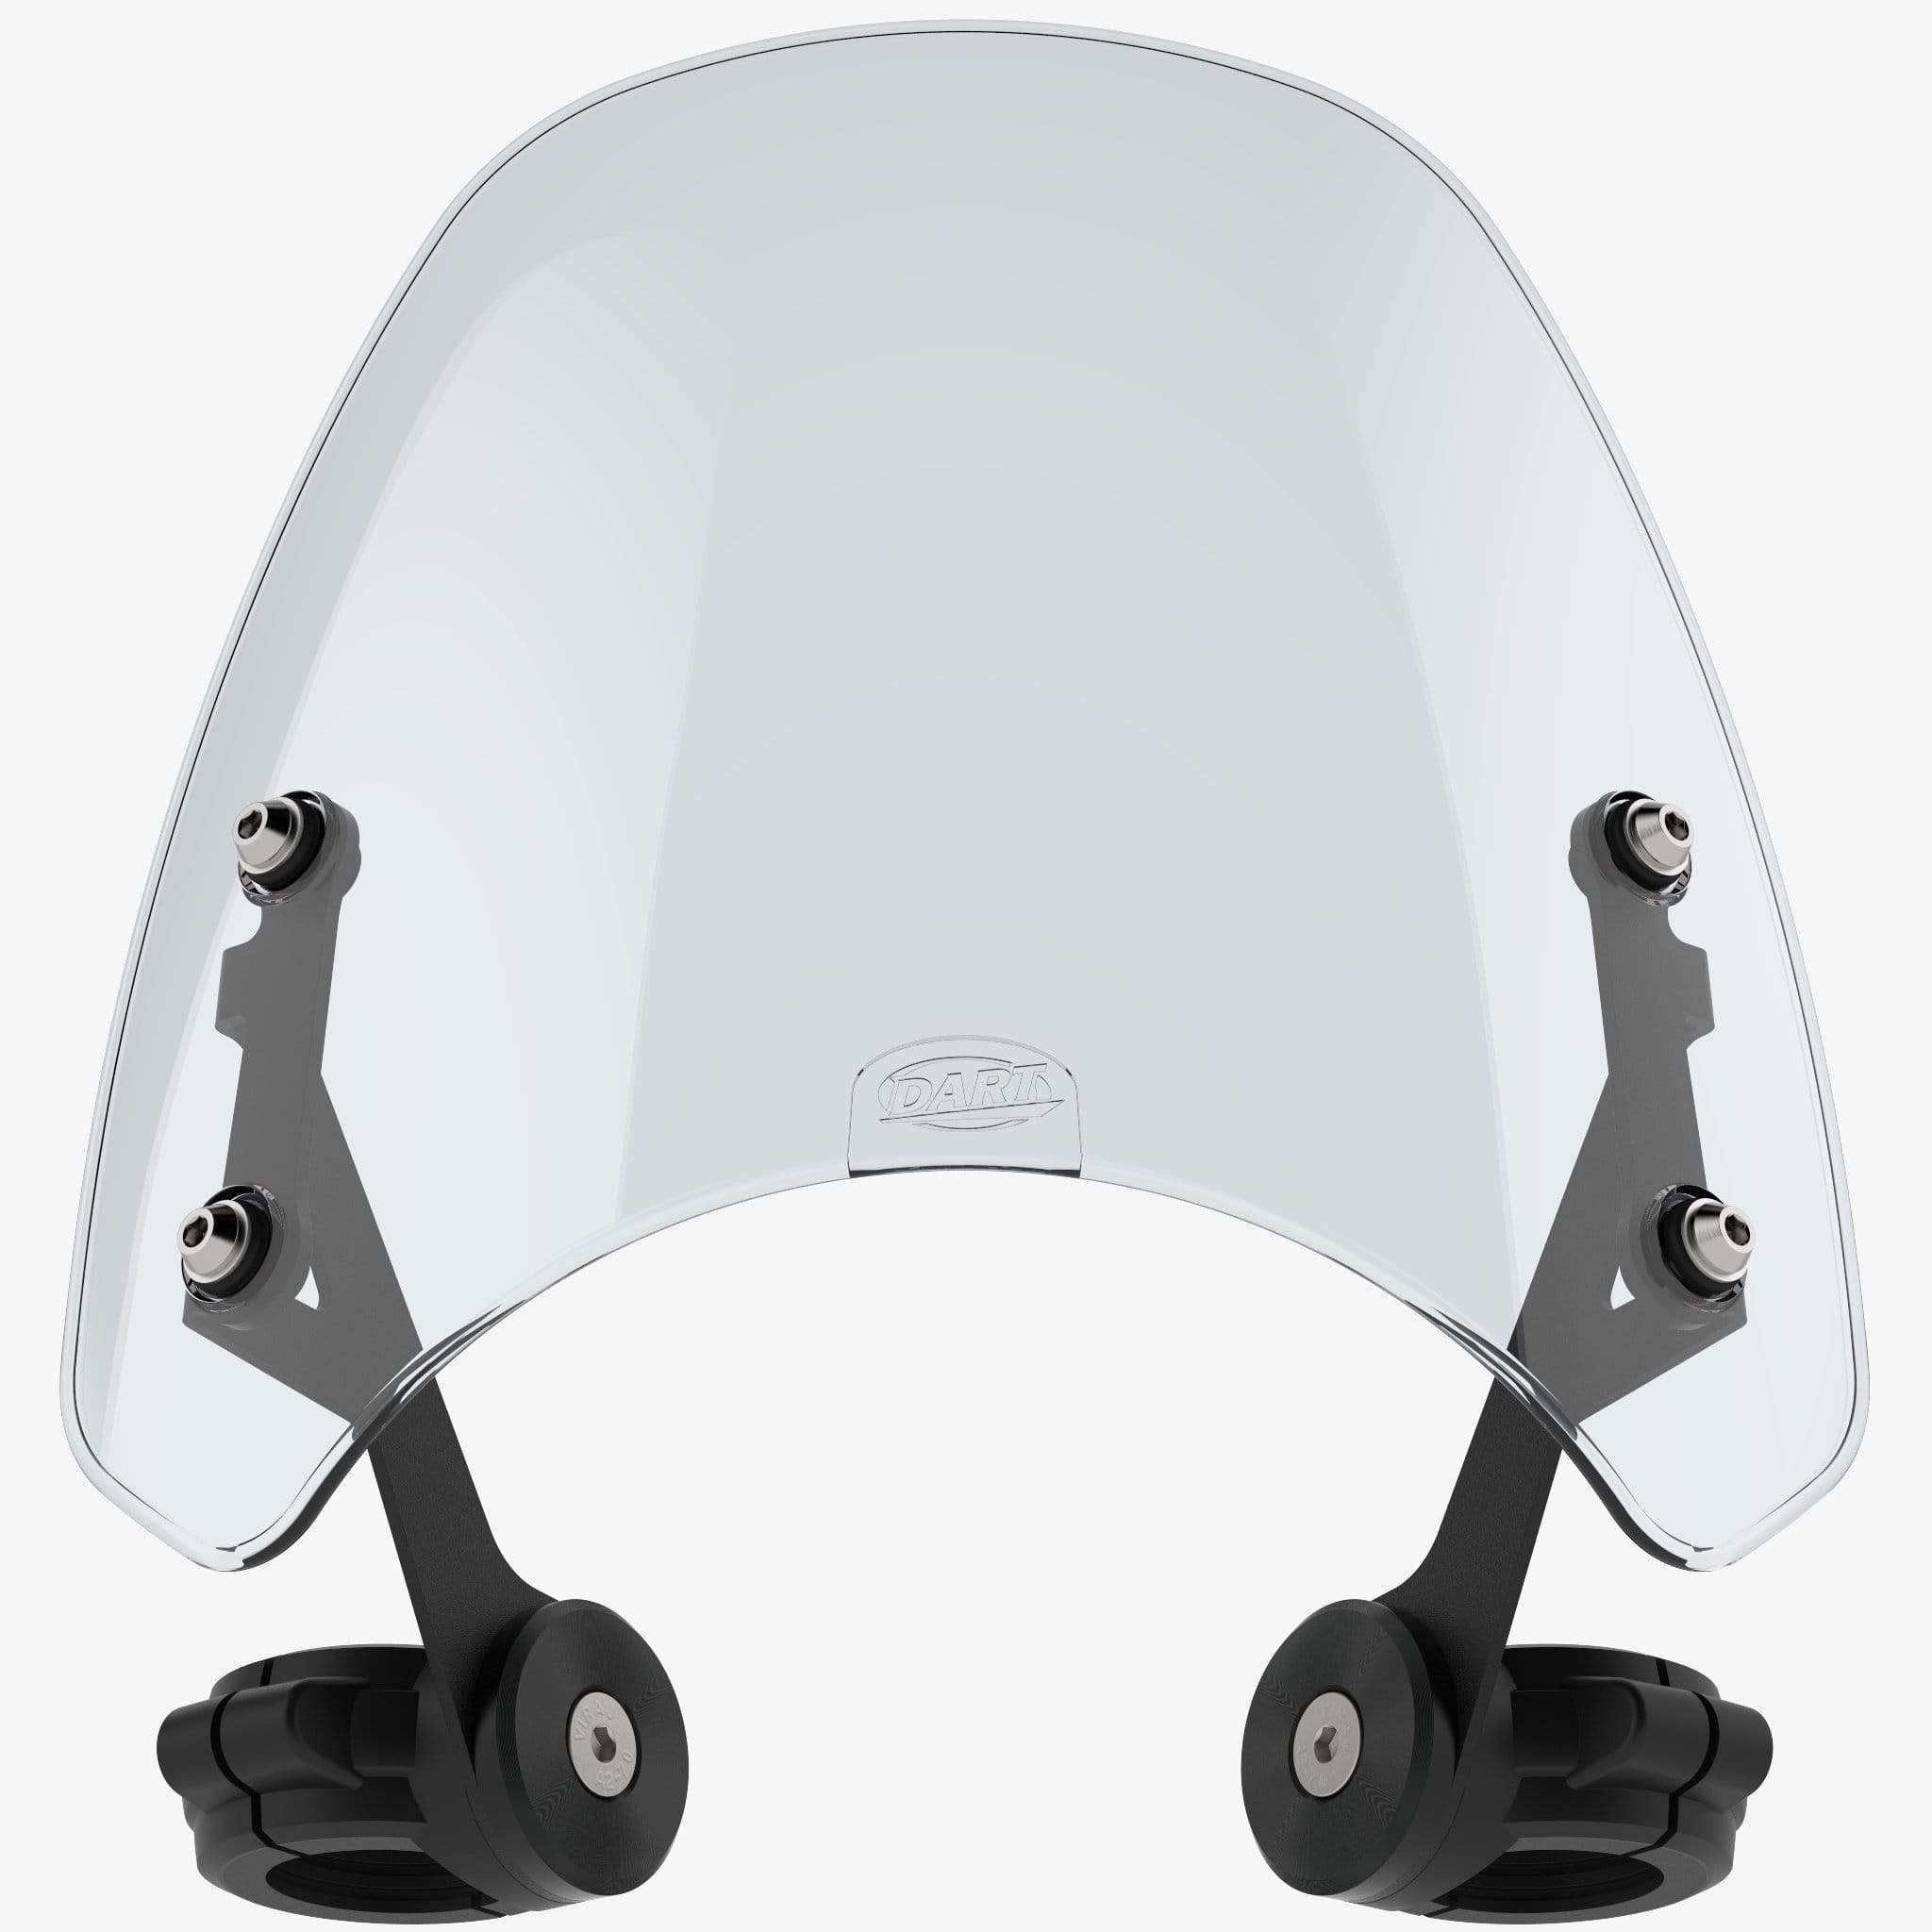 Harley-Davidson XL1200X Forty-Eight 48 - Classic 2012-2015 (39mm forks) / Light Tint Classic Flyscreen Dart Flyscreen Windshield